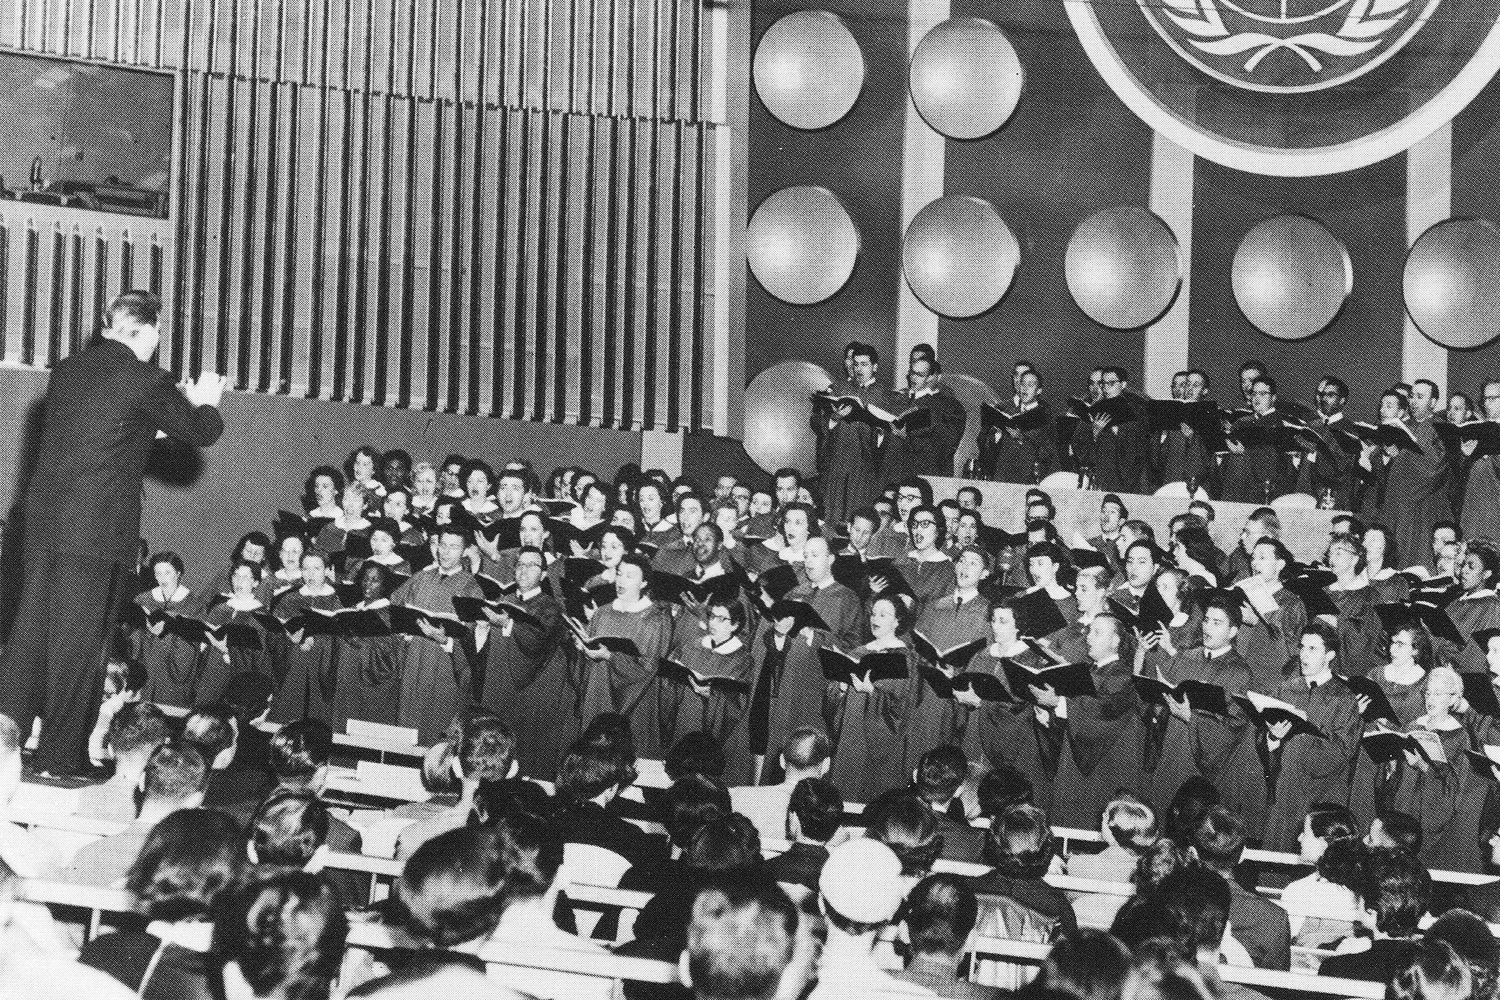 Robert Shaw conducting the New York Collegiat Chorale at opening of United Nations Building in 1953